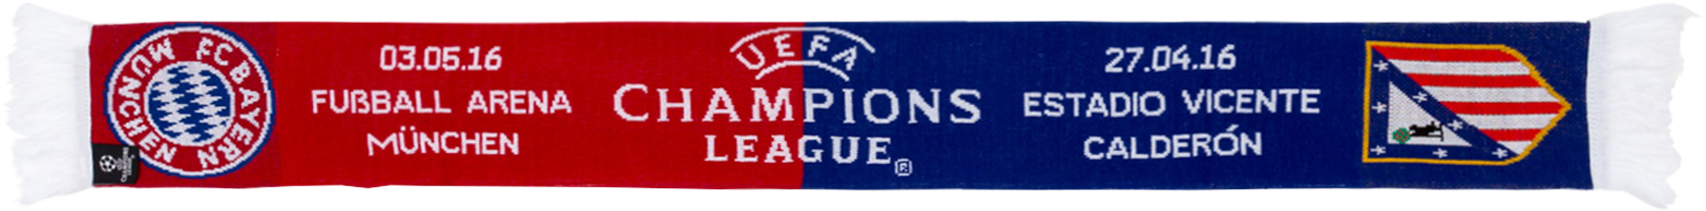 BAYERN-Munchen-ATLETICO-Madrid-UEFA-Europa-League-2